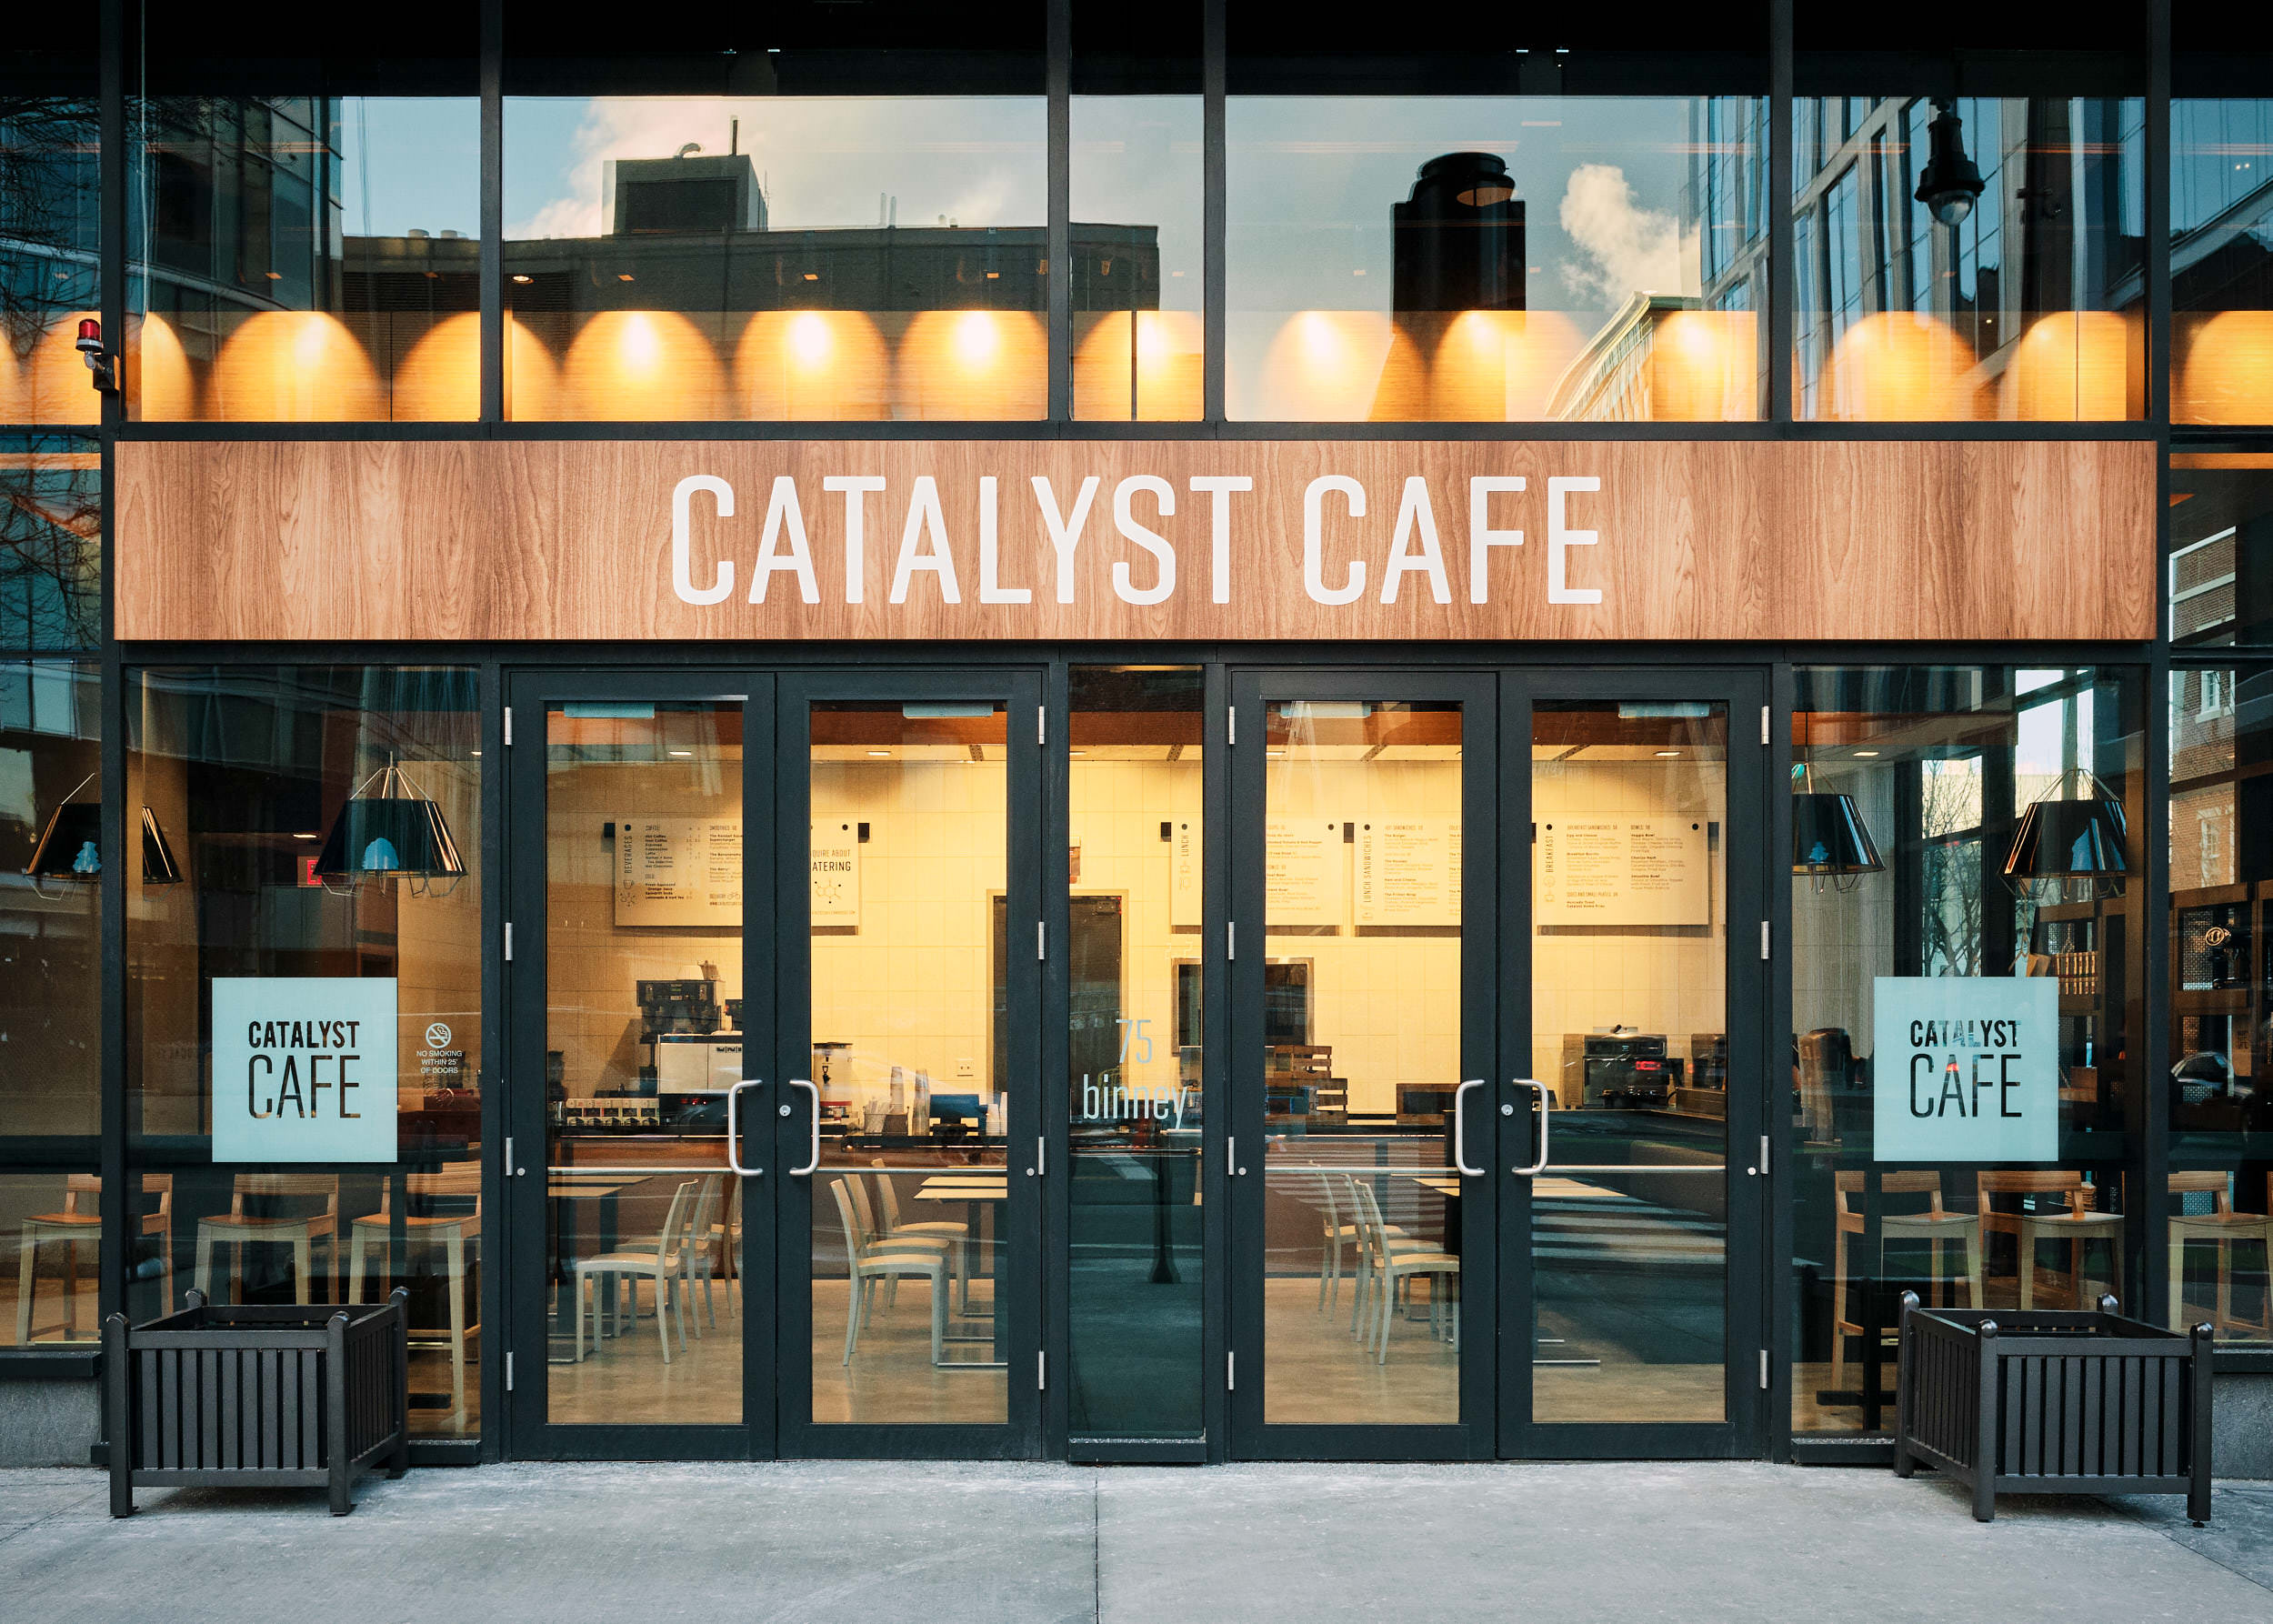 Catalyst Cafe